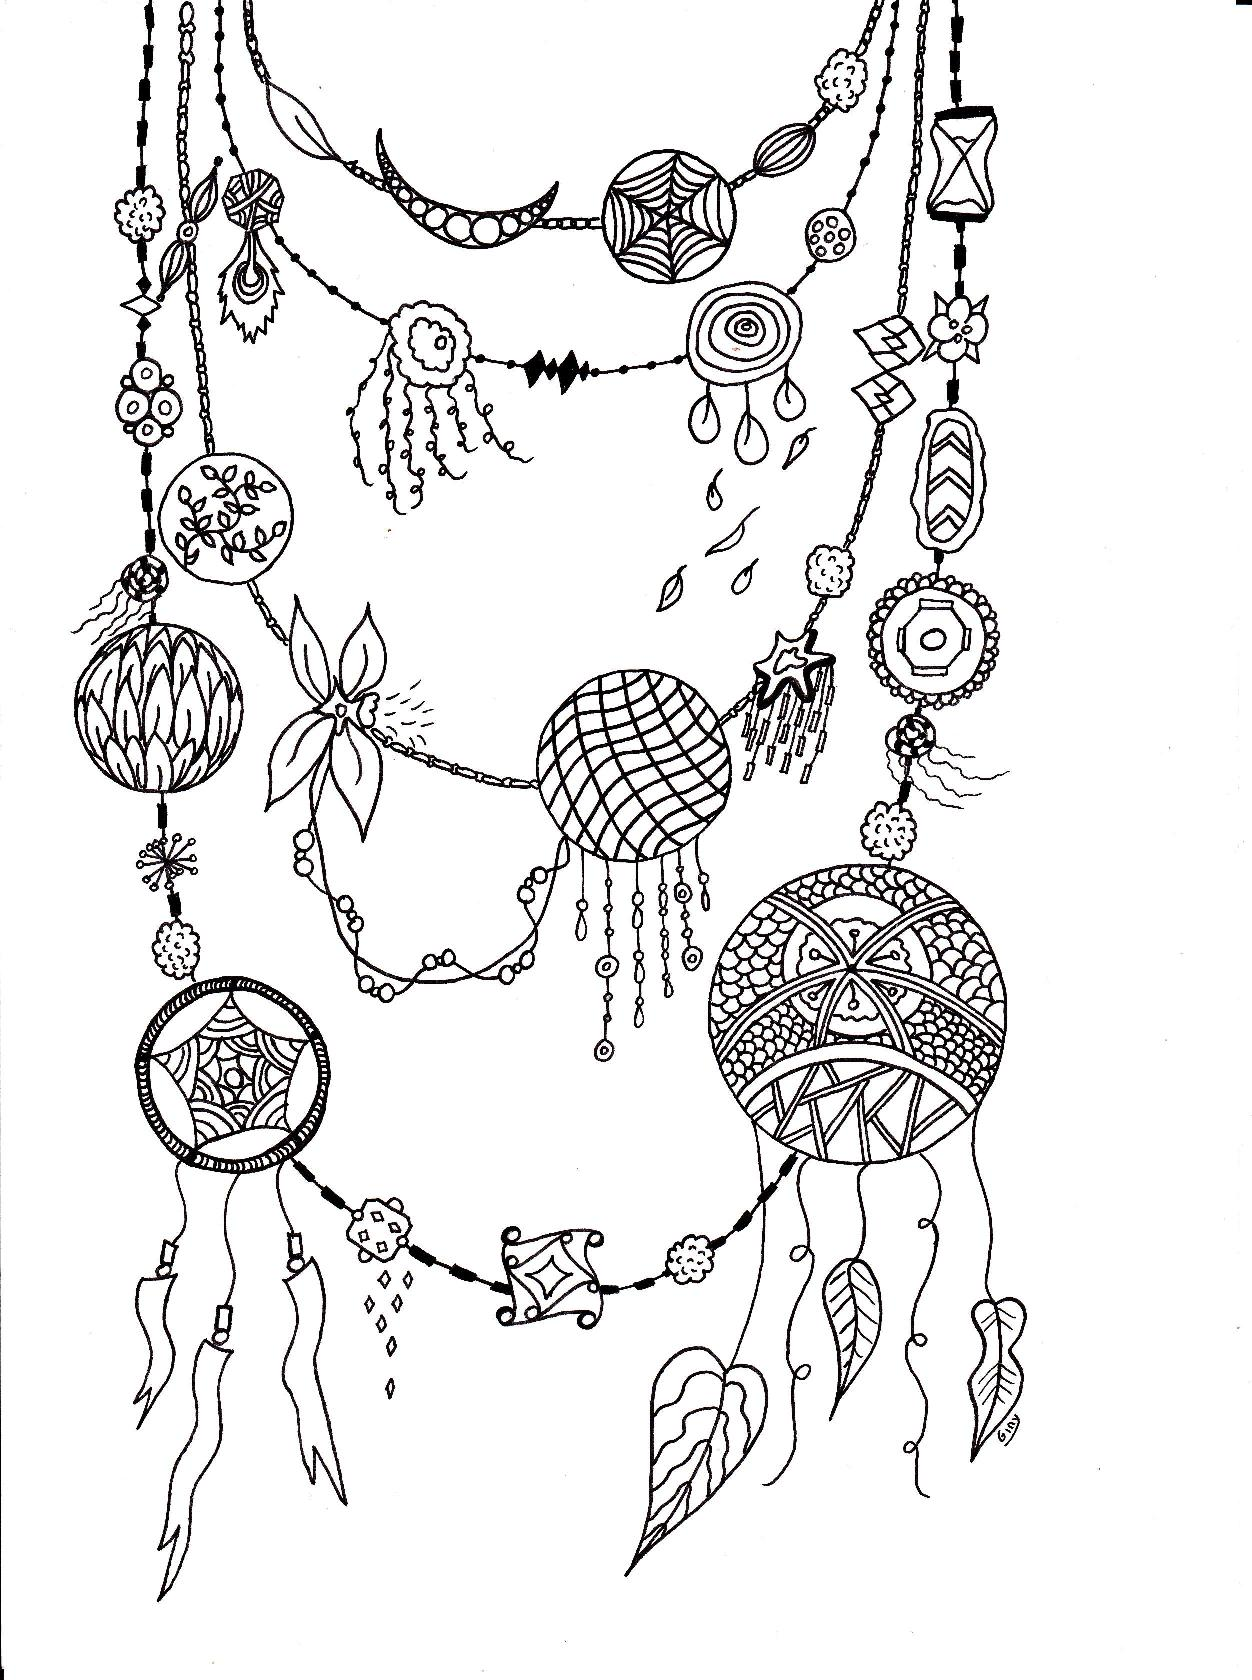 Collier original coloriage adulte - Dessin a colorier adulte ...